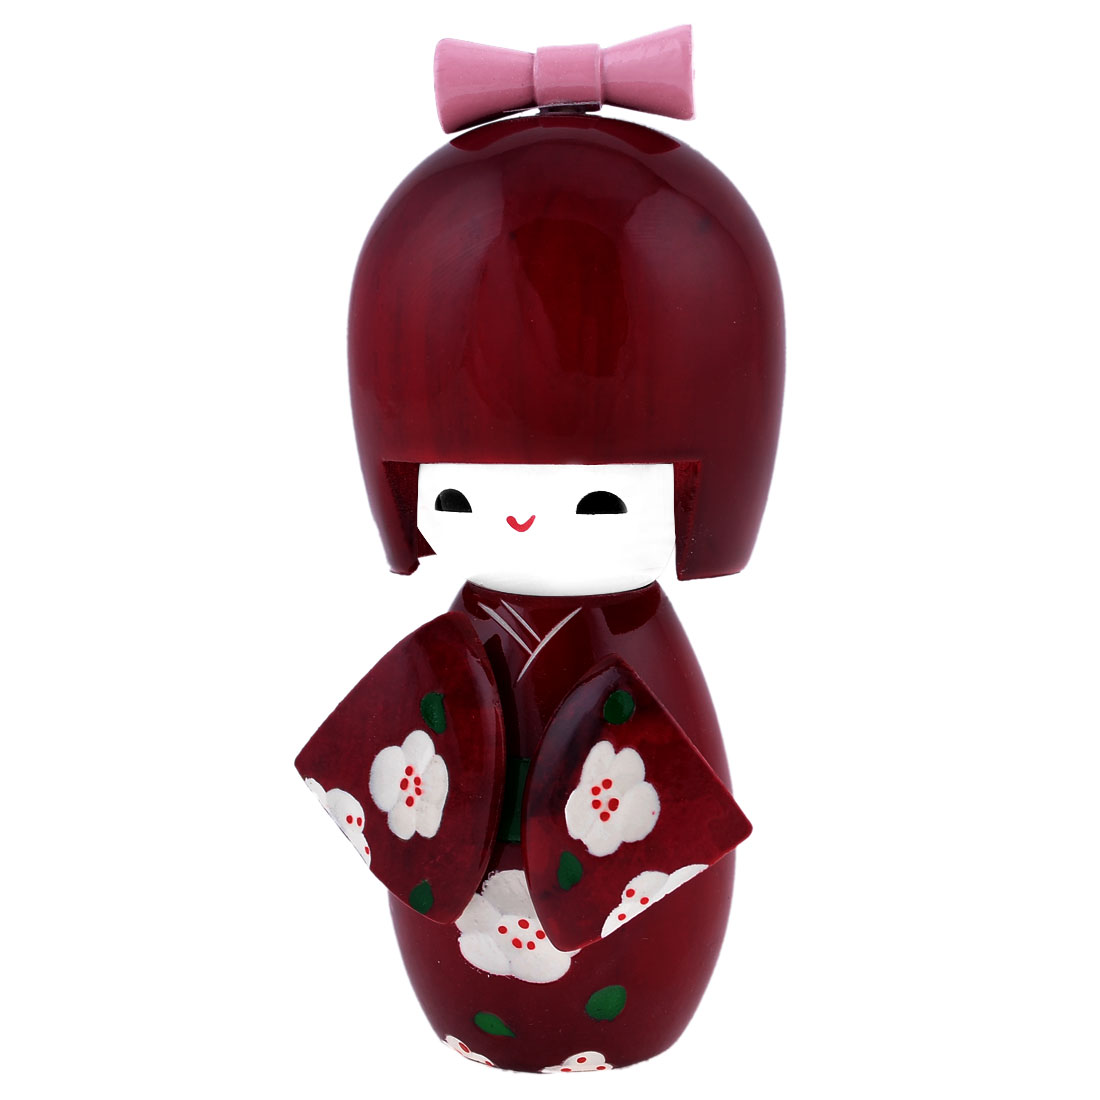 White Plum Plossom Detail Claret Wood Japanese Folk Craft Kokeshi Doll